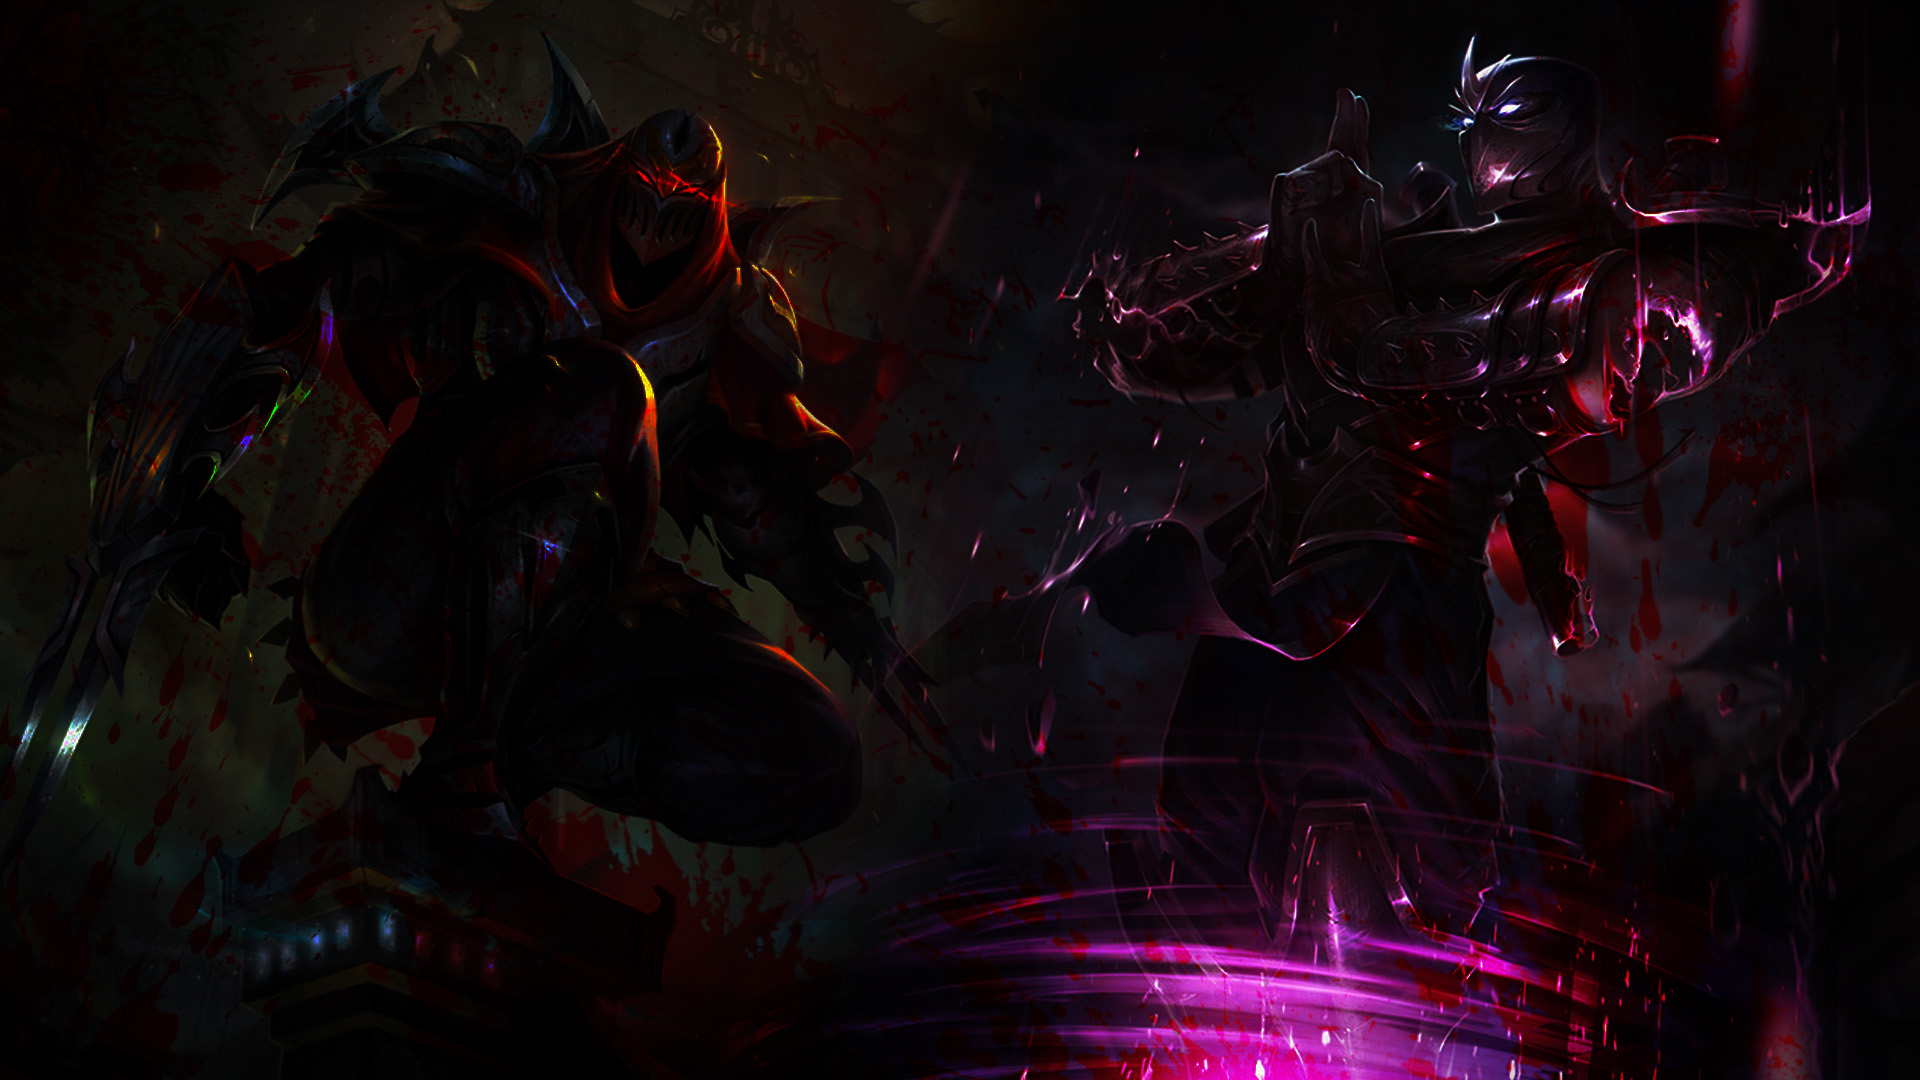 zed and shen wallpaper by xsurfspyx zed and shen wallpaper by xsurfspyx